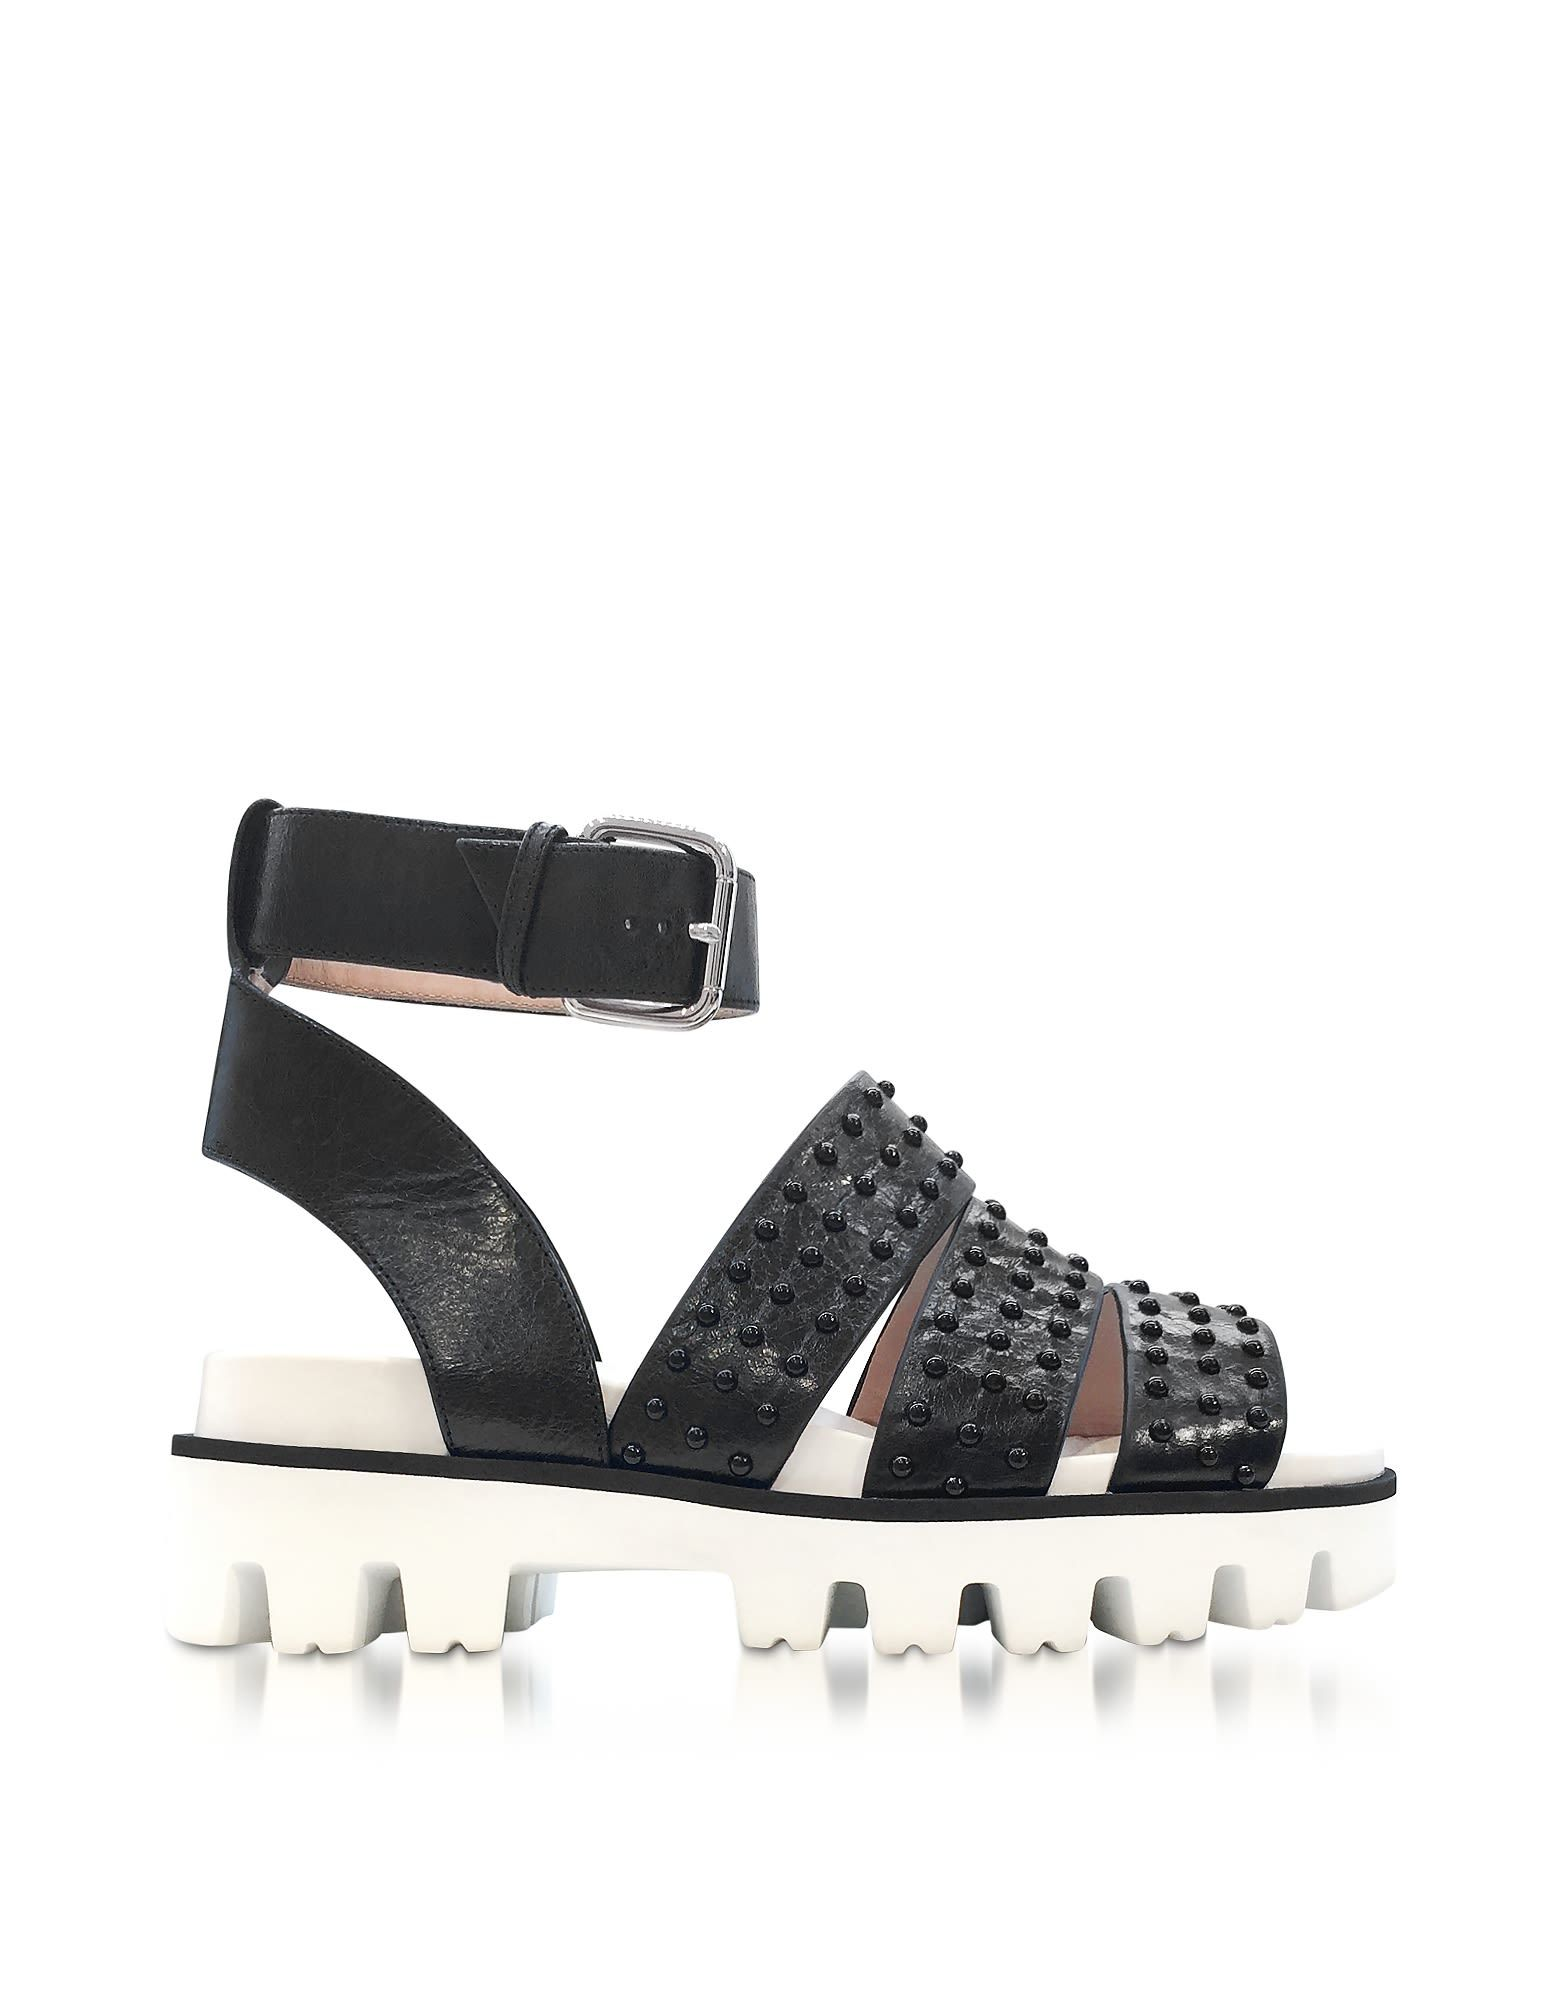 RED Valentino Shoes, Leather Flat Sandals w/Studs